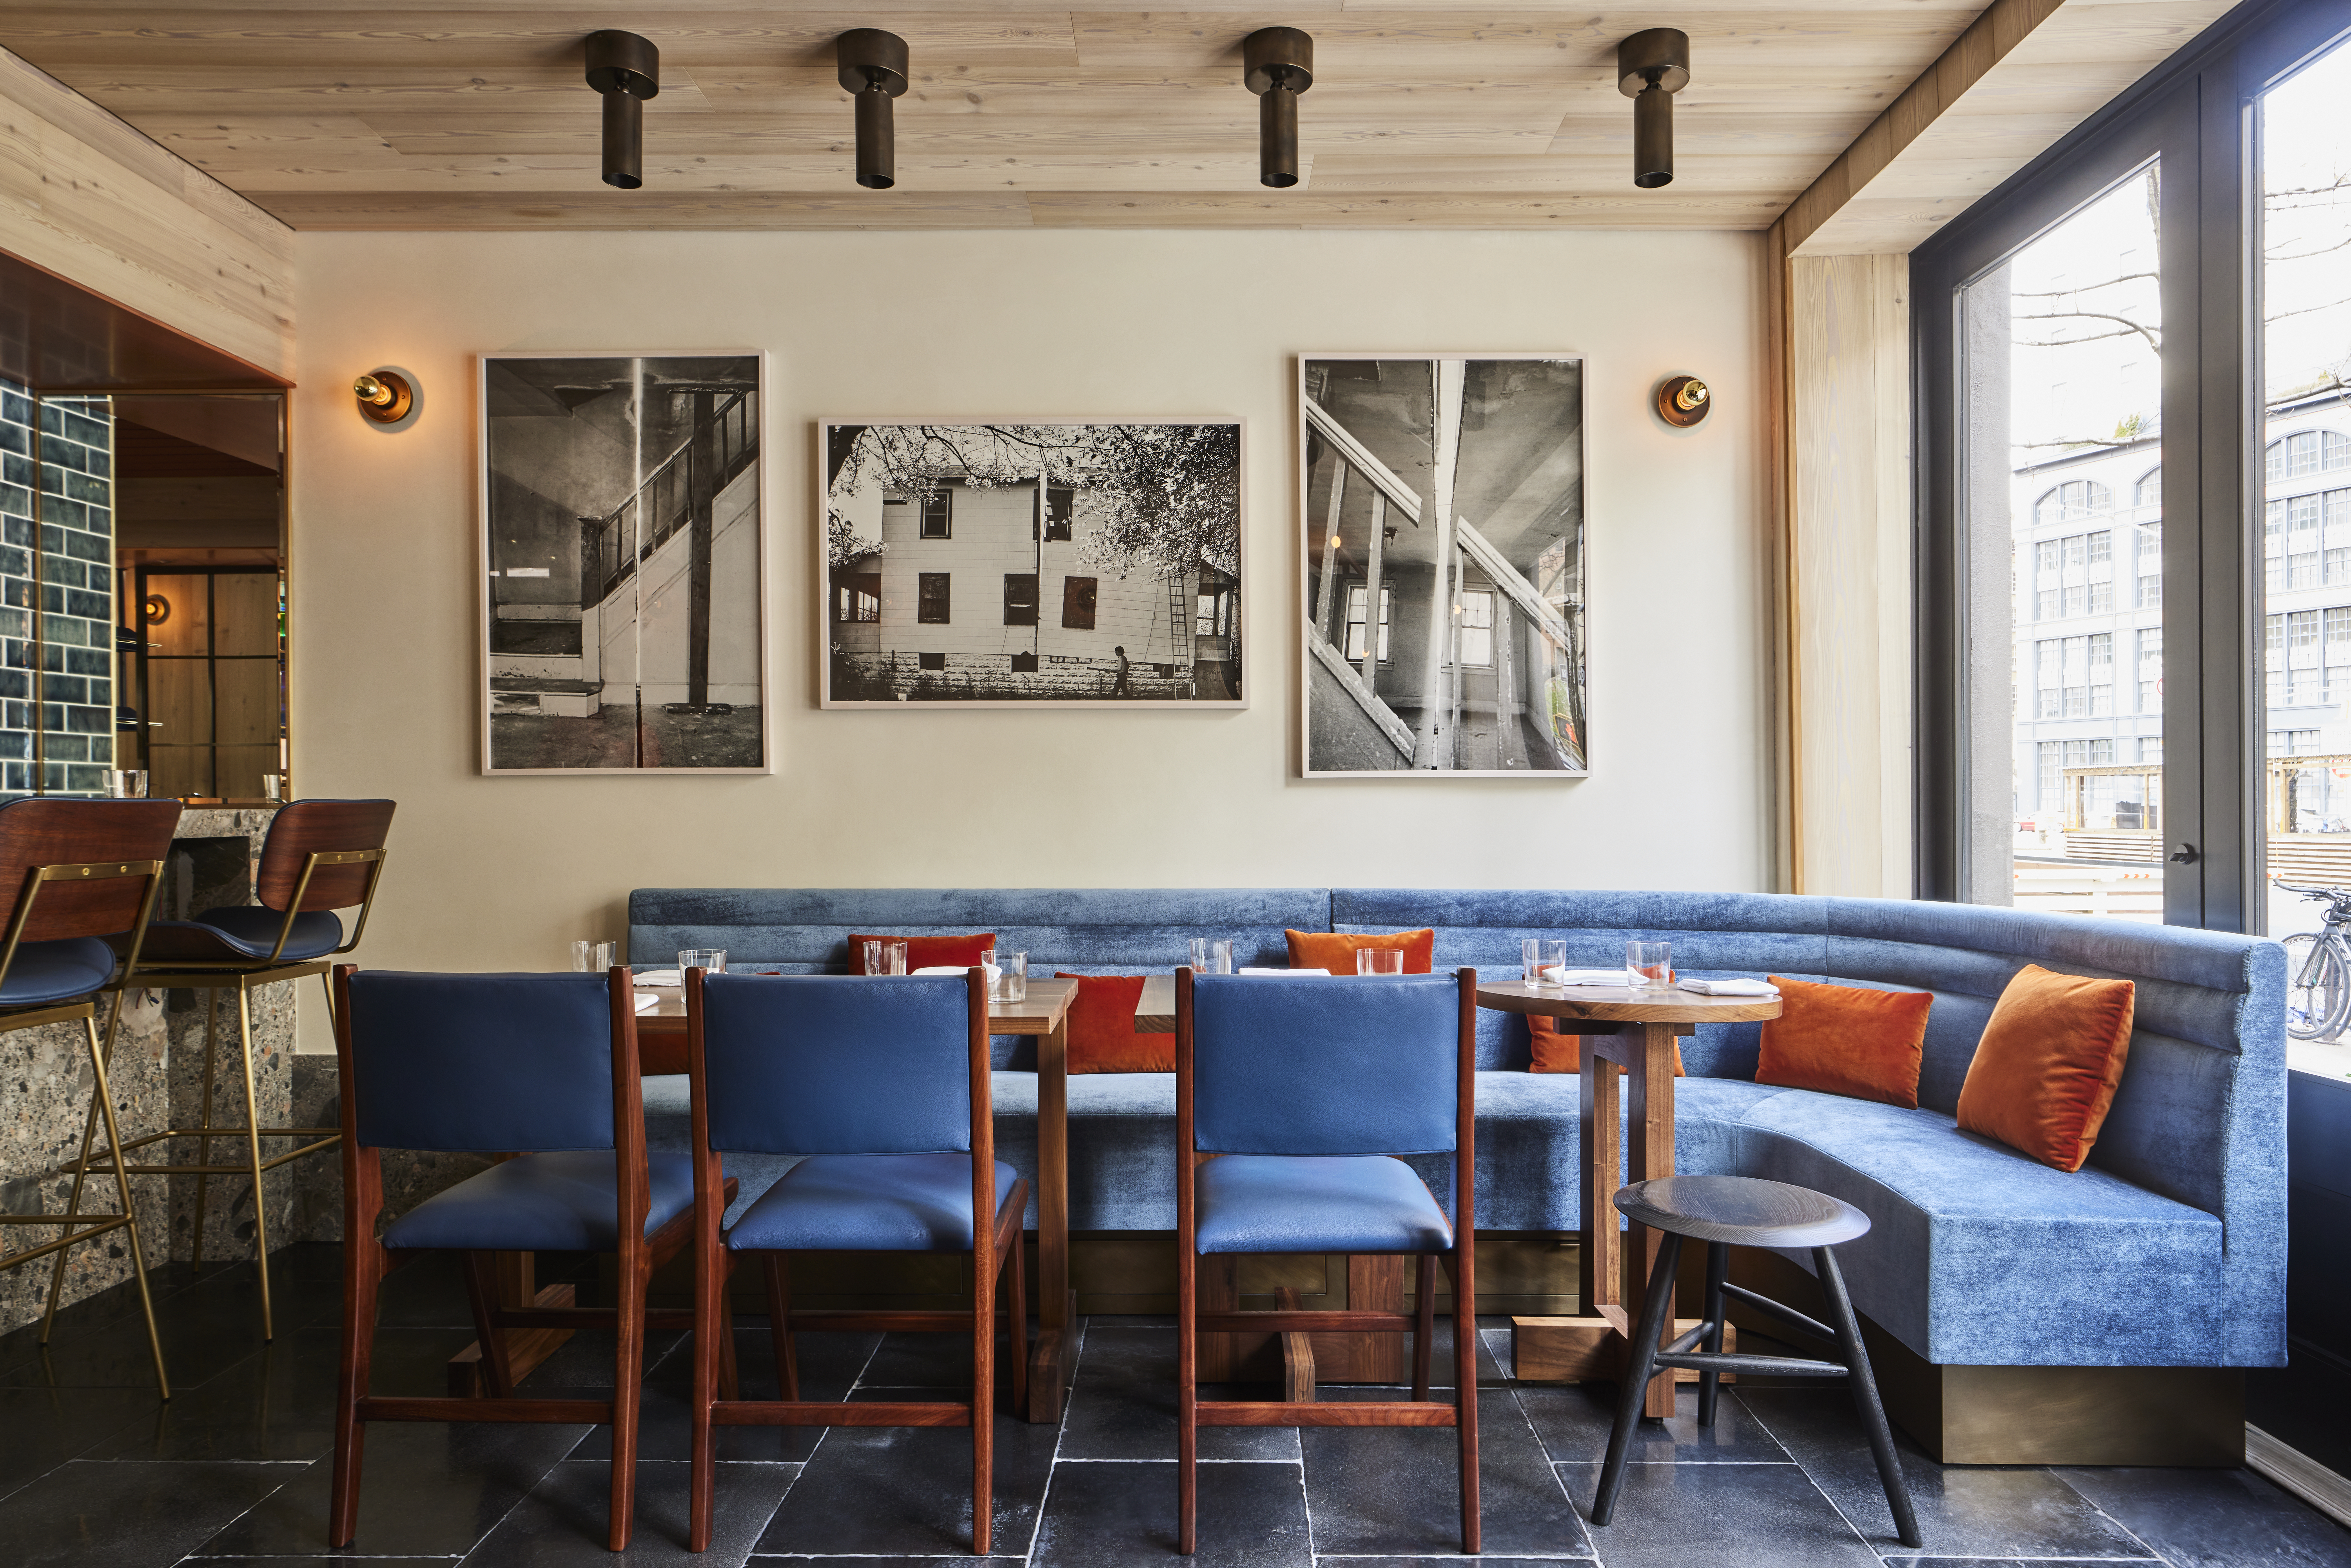 A well-lit dining room with a wrap-around, blue velvet banquette and a few wooden chairs